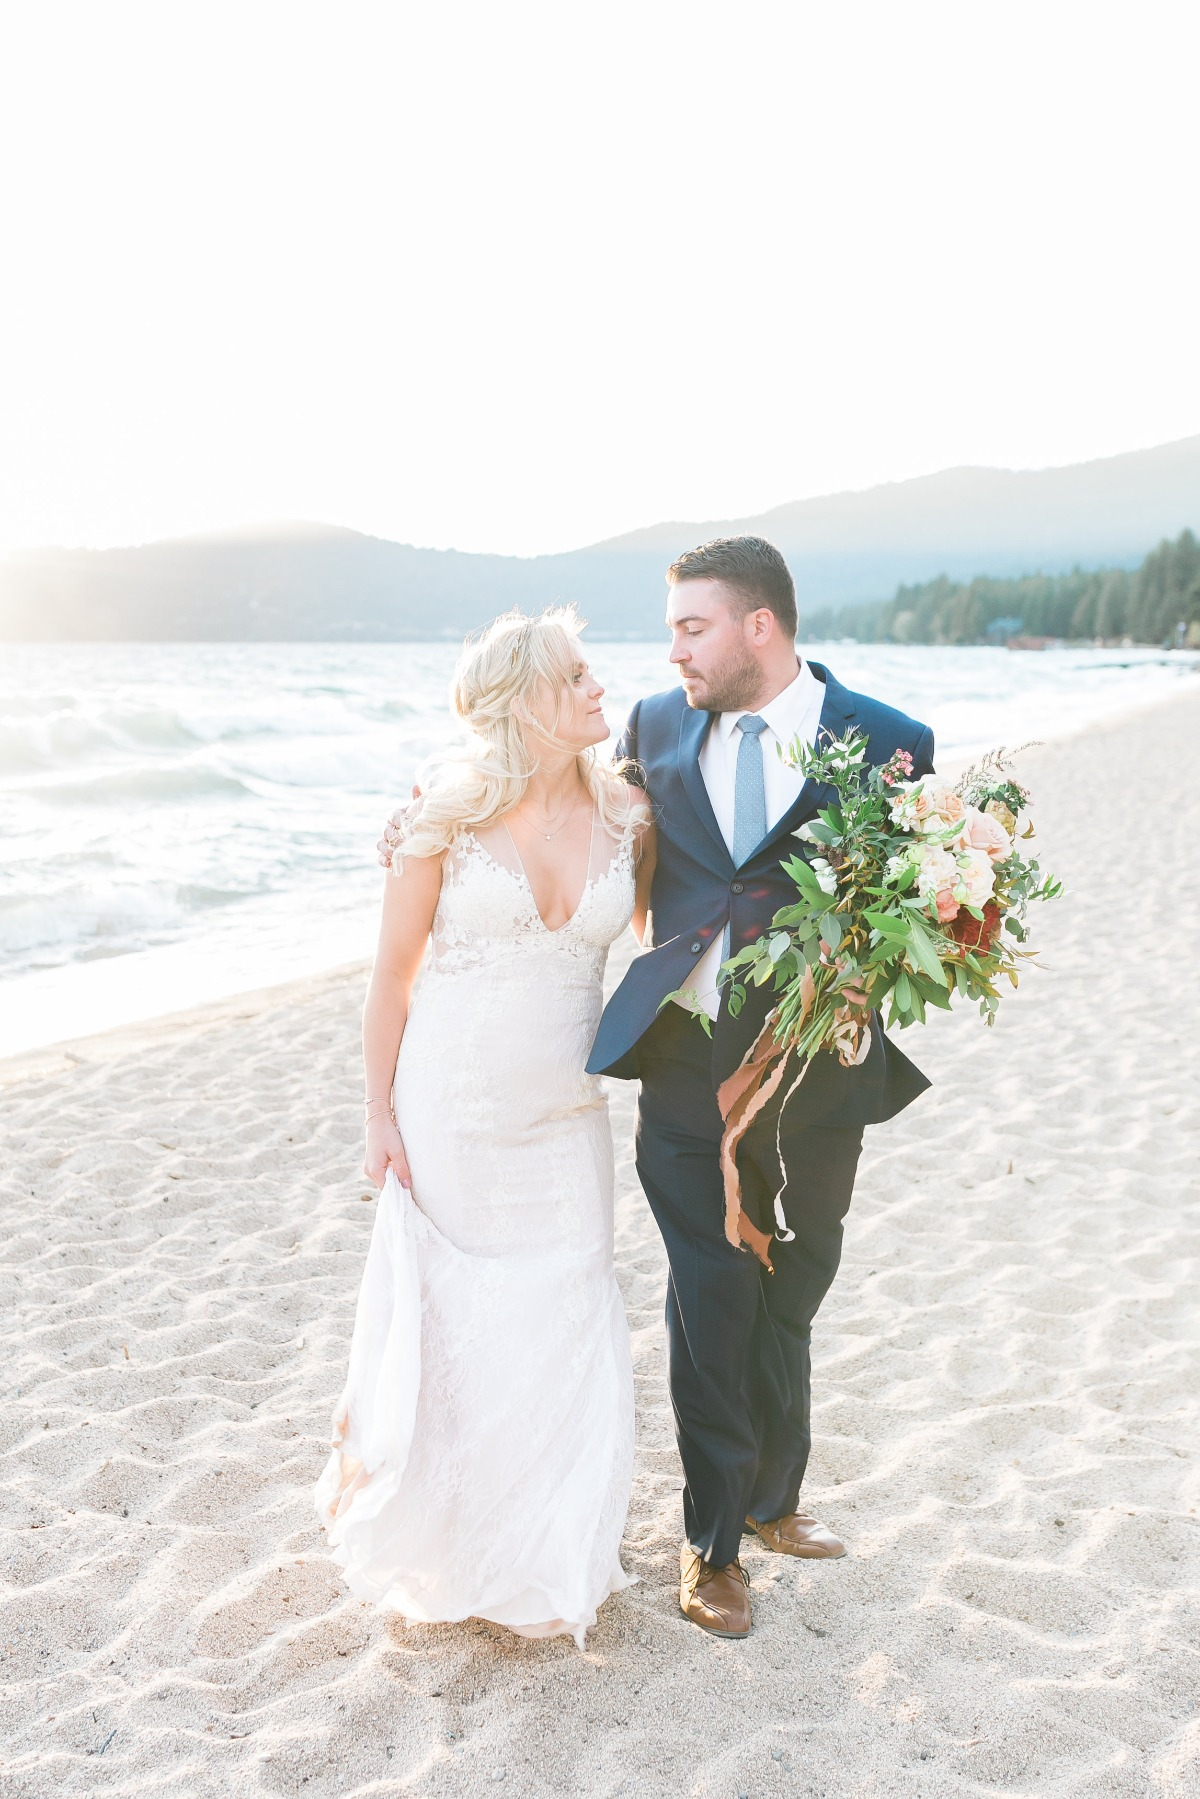 just got married on the shore of Lake Tahoe